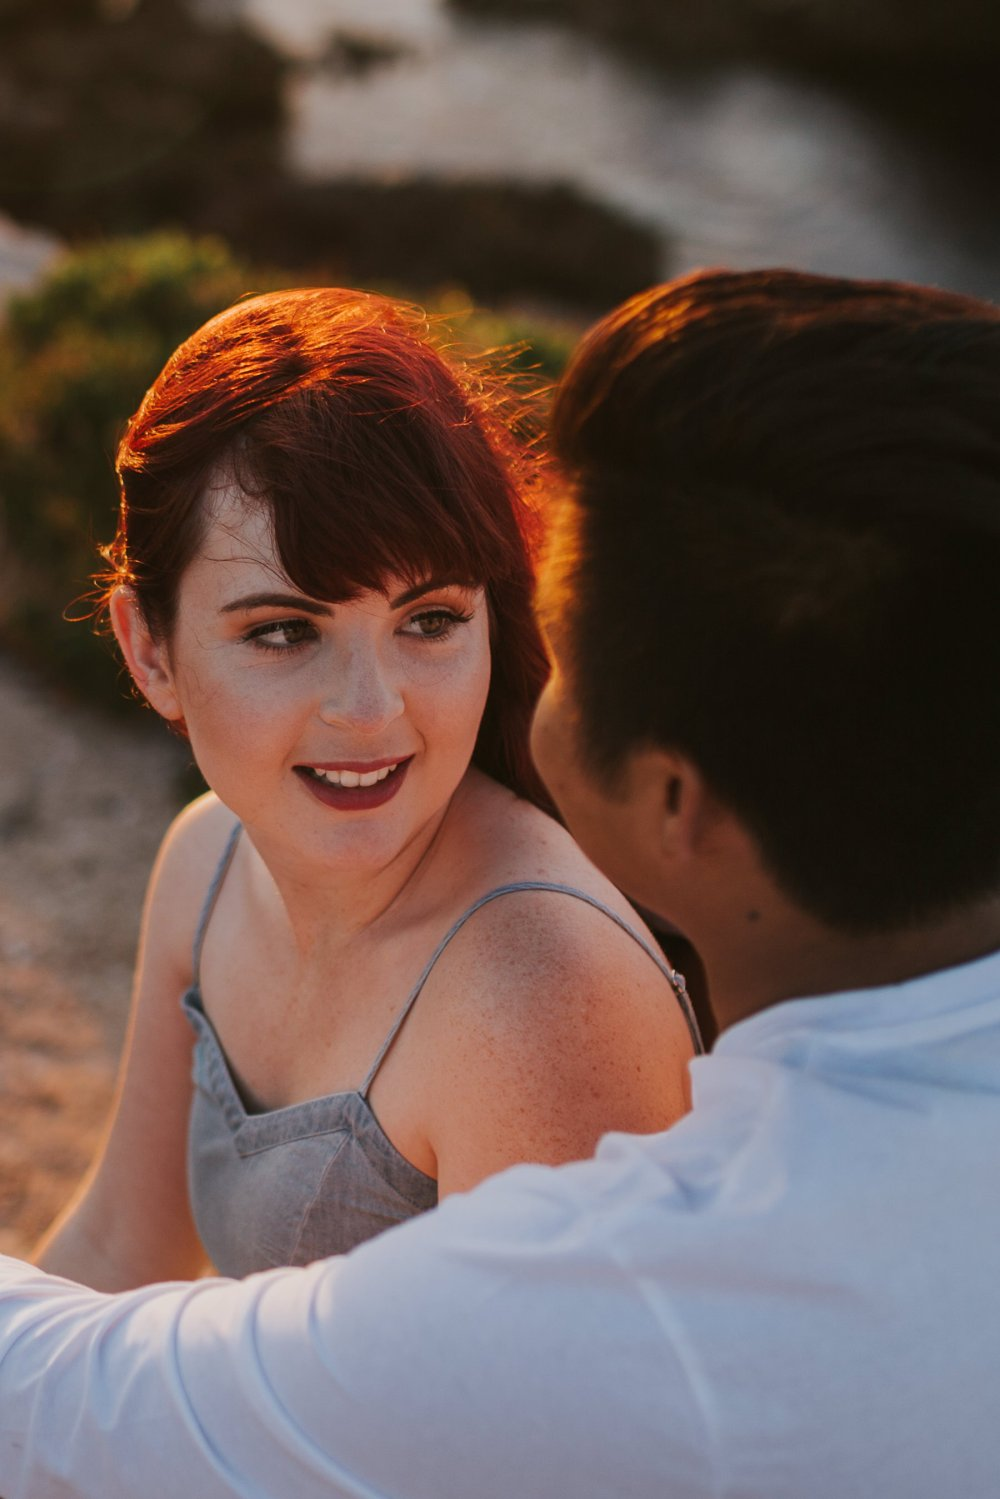 Ebony Blush Photography | Perth Wedding Photographer | Paton + Klyde | Engagement66Beach Engagement Photos, Perth